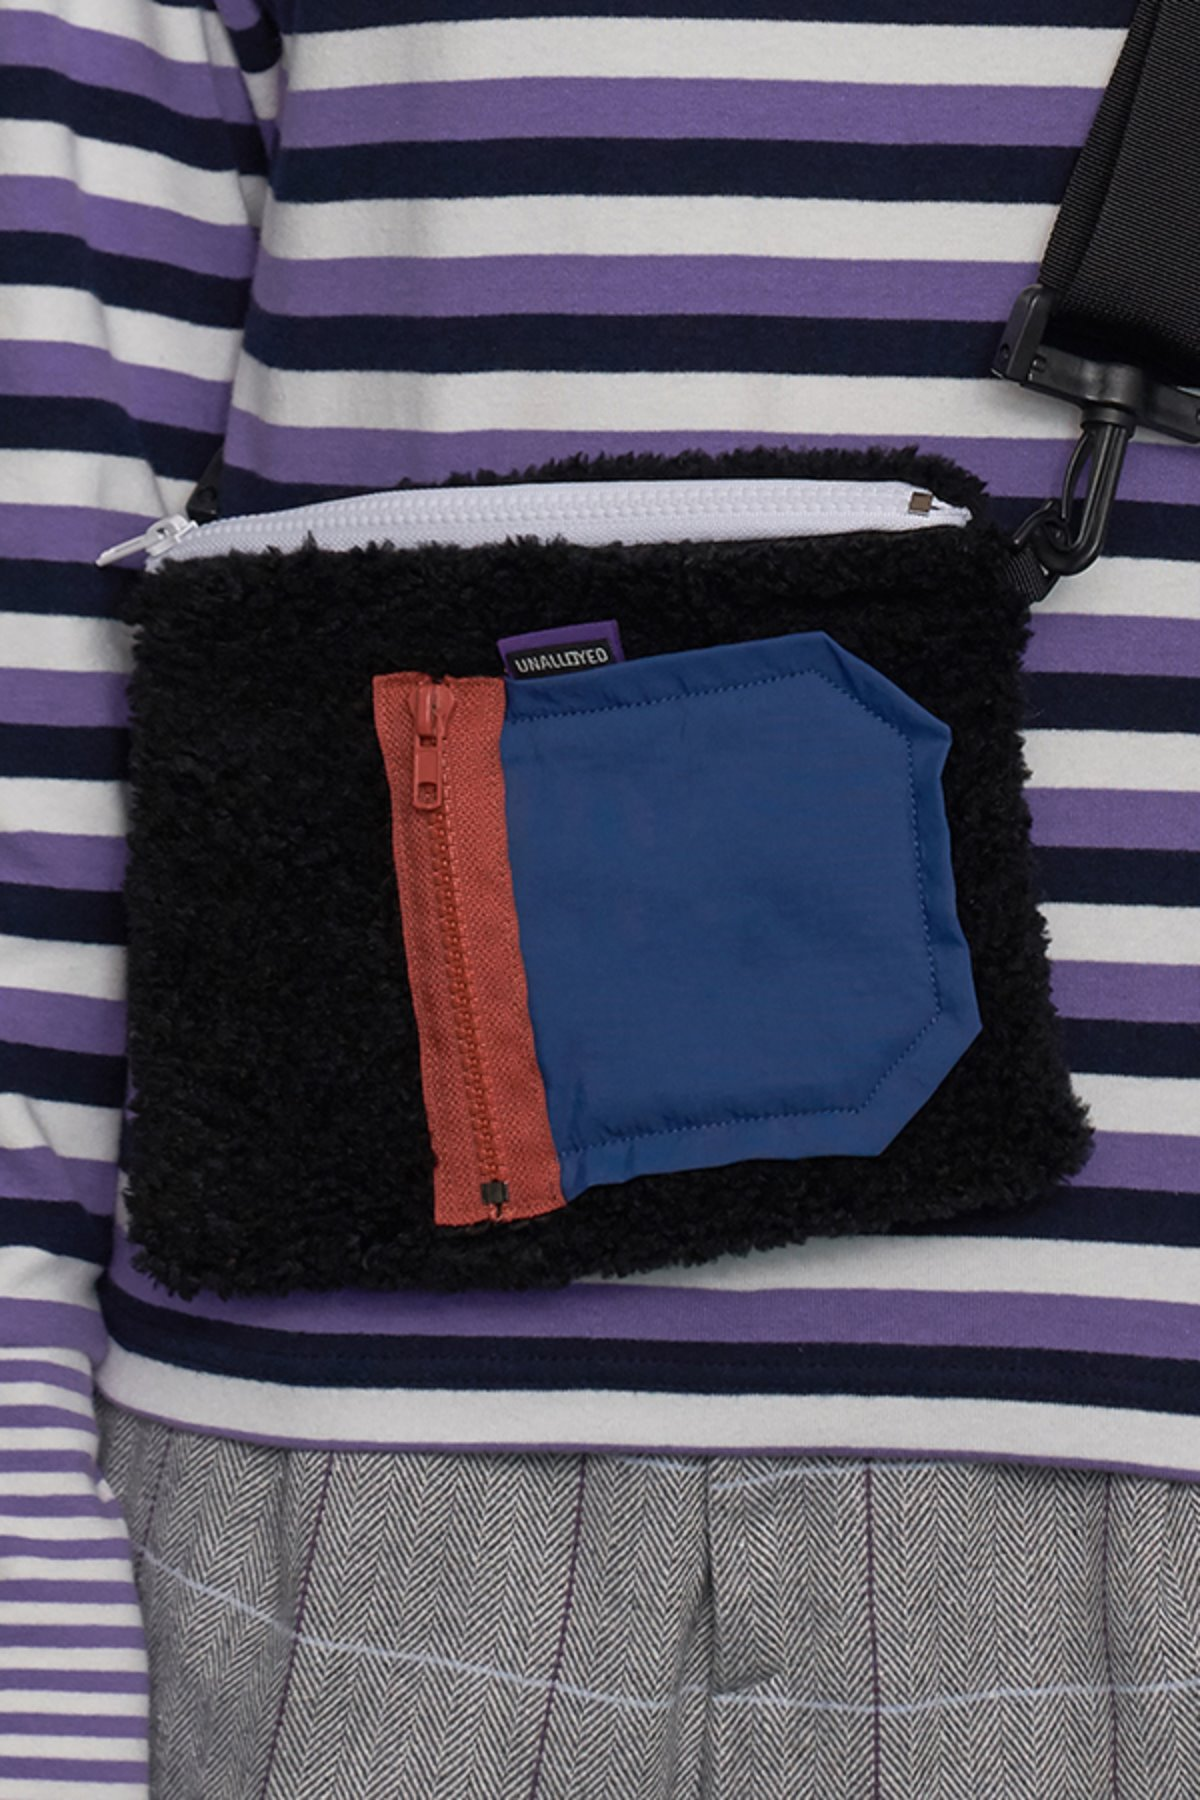 POCKET FLEECE SACOCHE BAG / BLACK